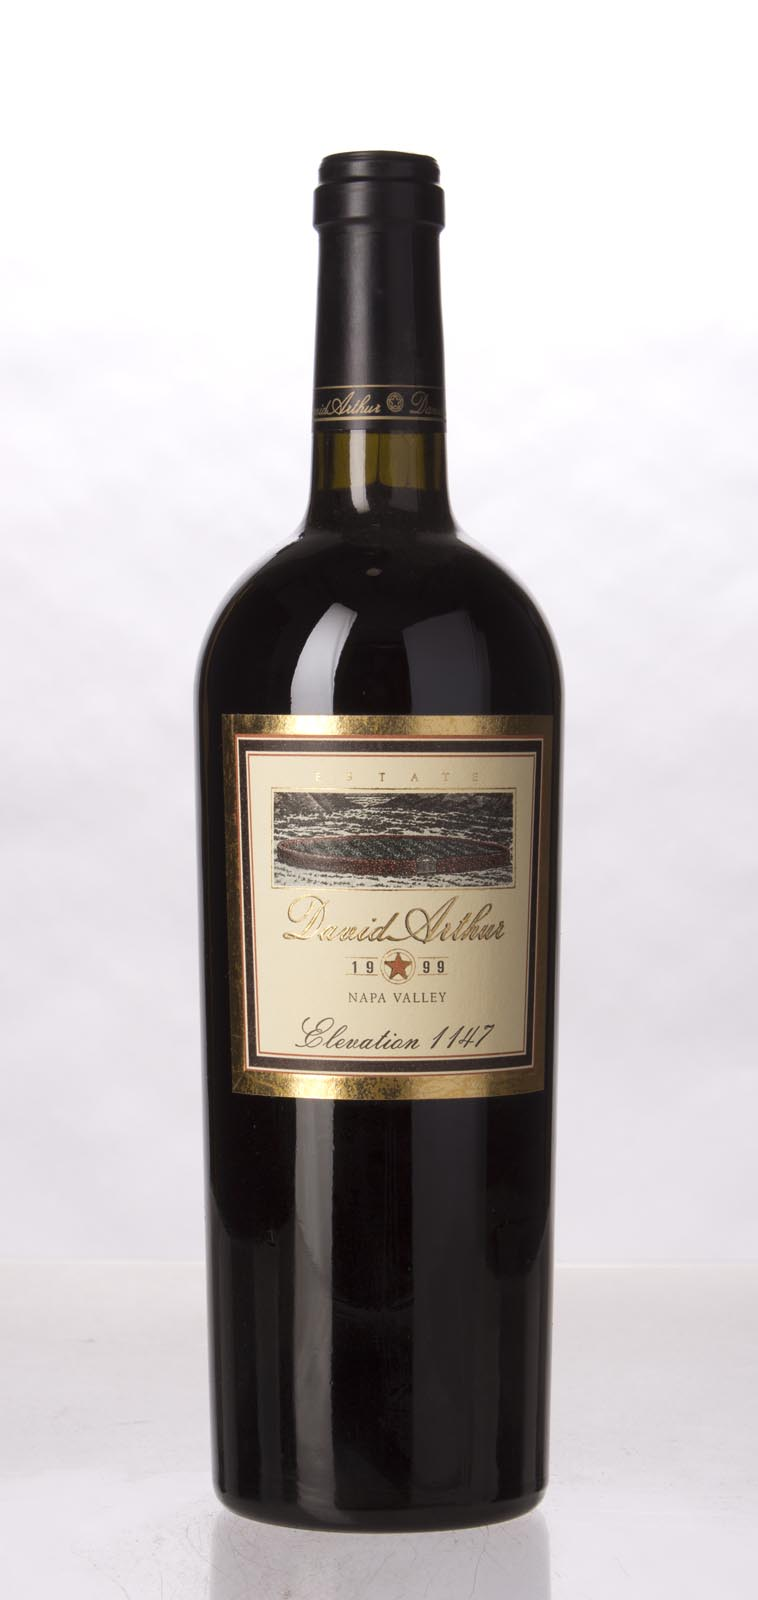 David Arthur Cabernet Sauvignon Elevation 1147 1999, 750mL (WS95) from The BPW - Merchants of rare and fine wines.